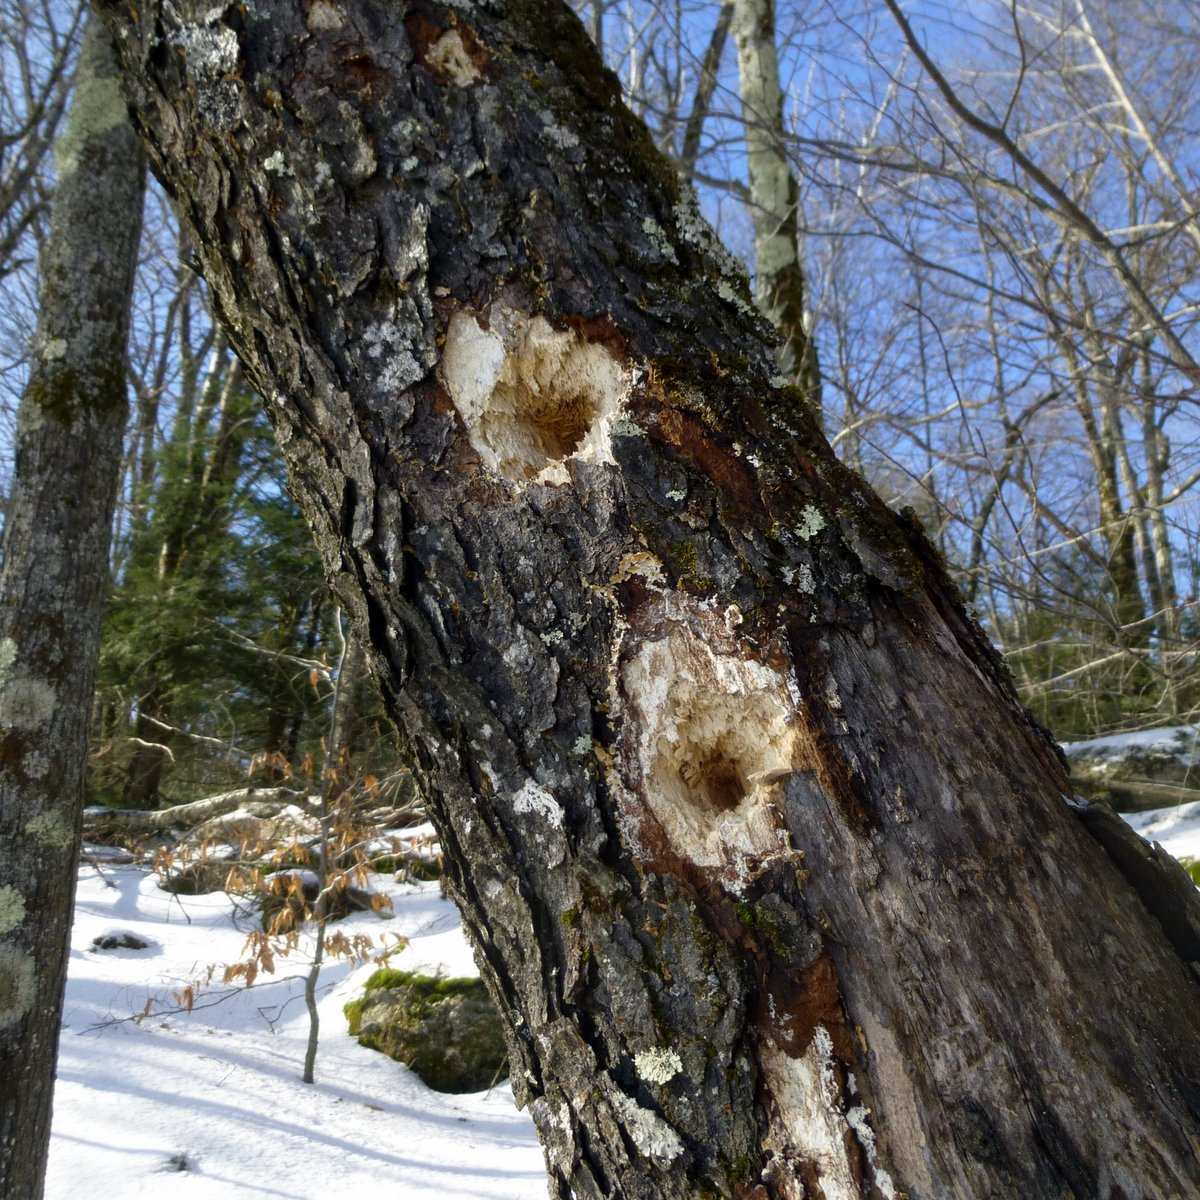 12. Woodpecker Holes